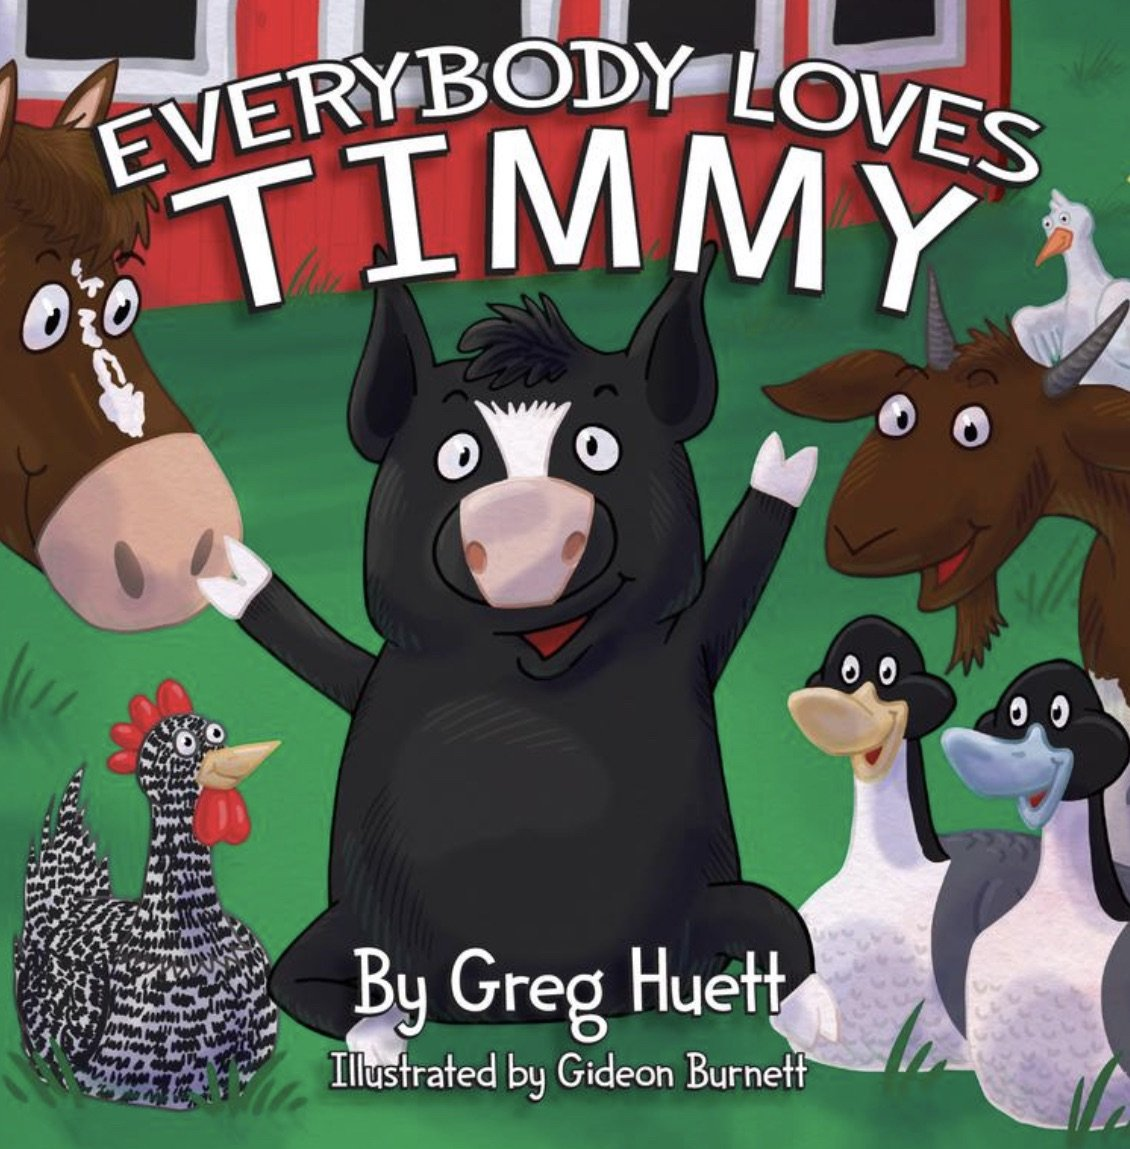 EVERYBODY LOVES TIMMY KIDS BOOK